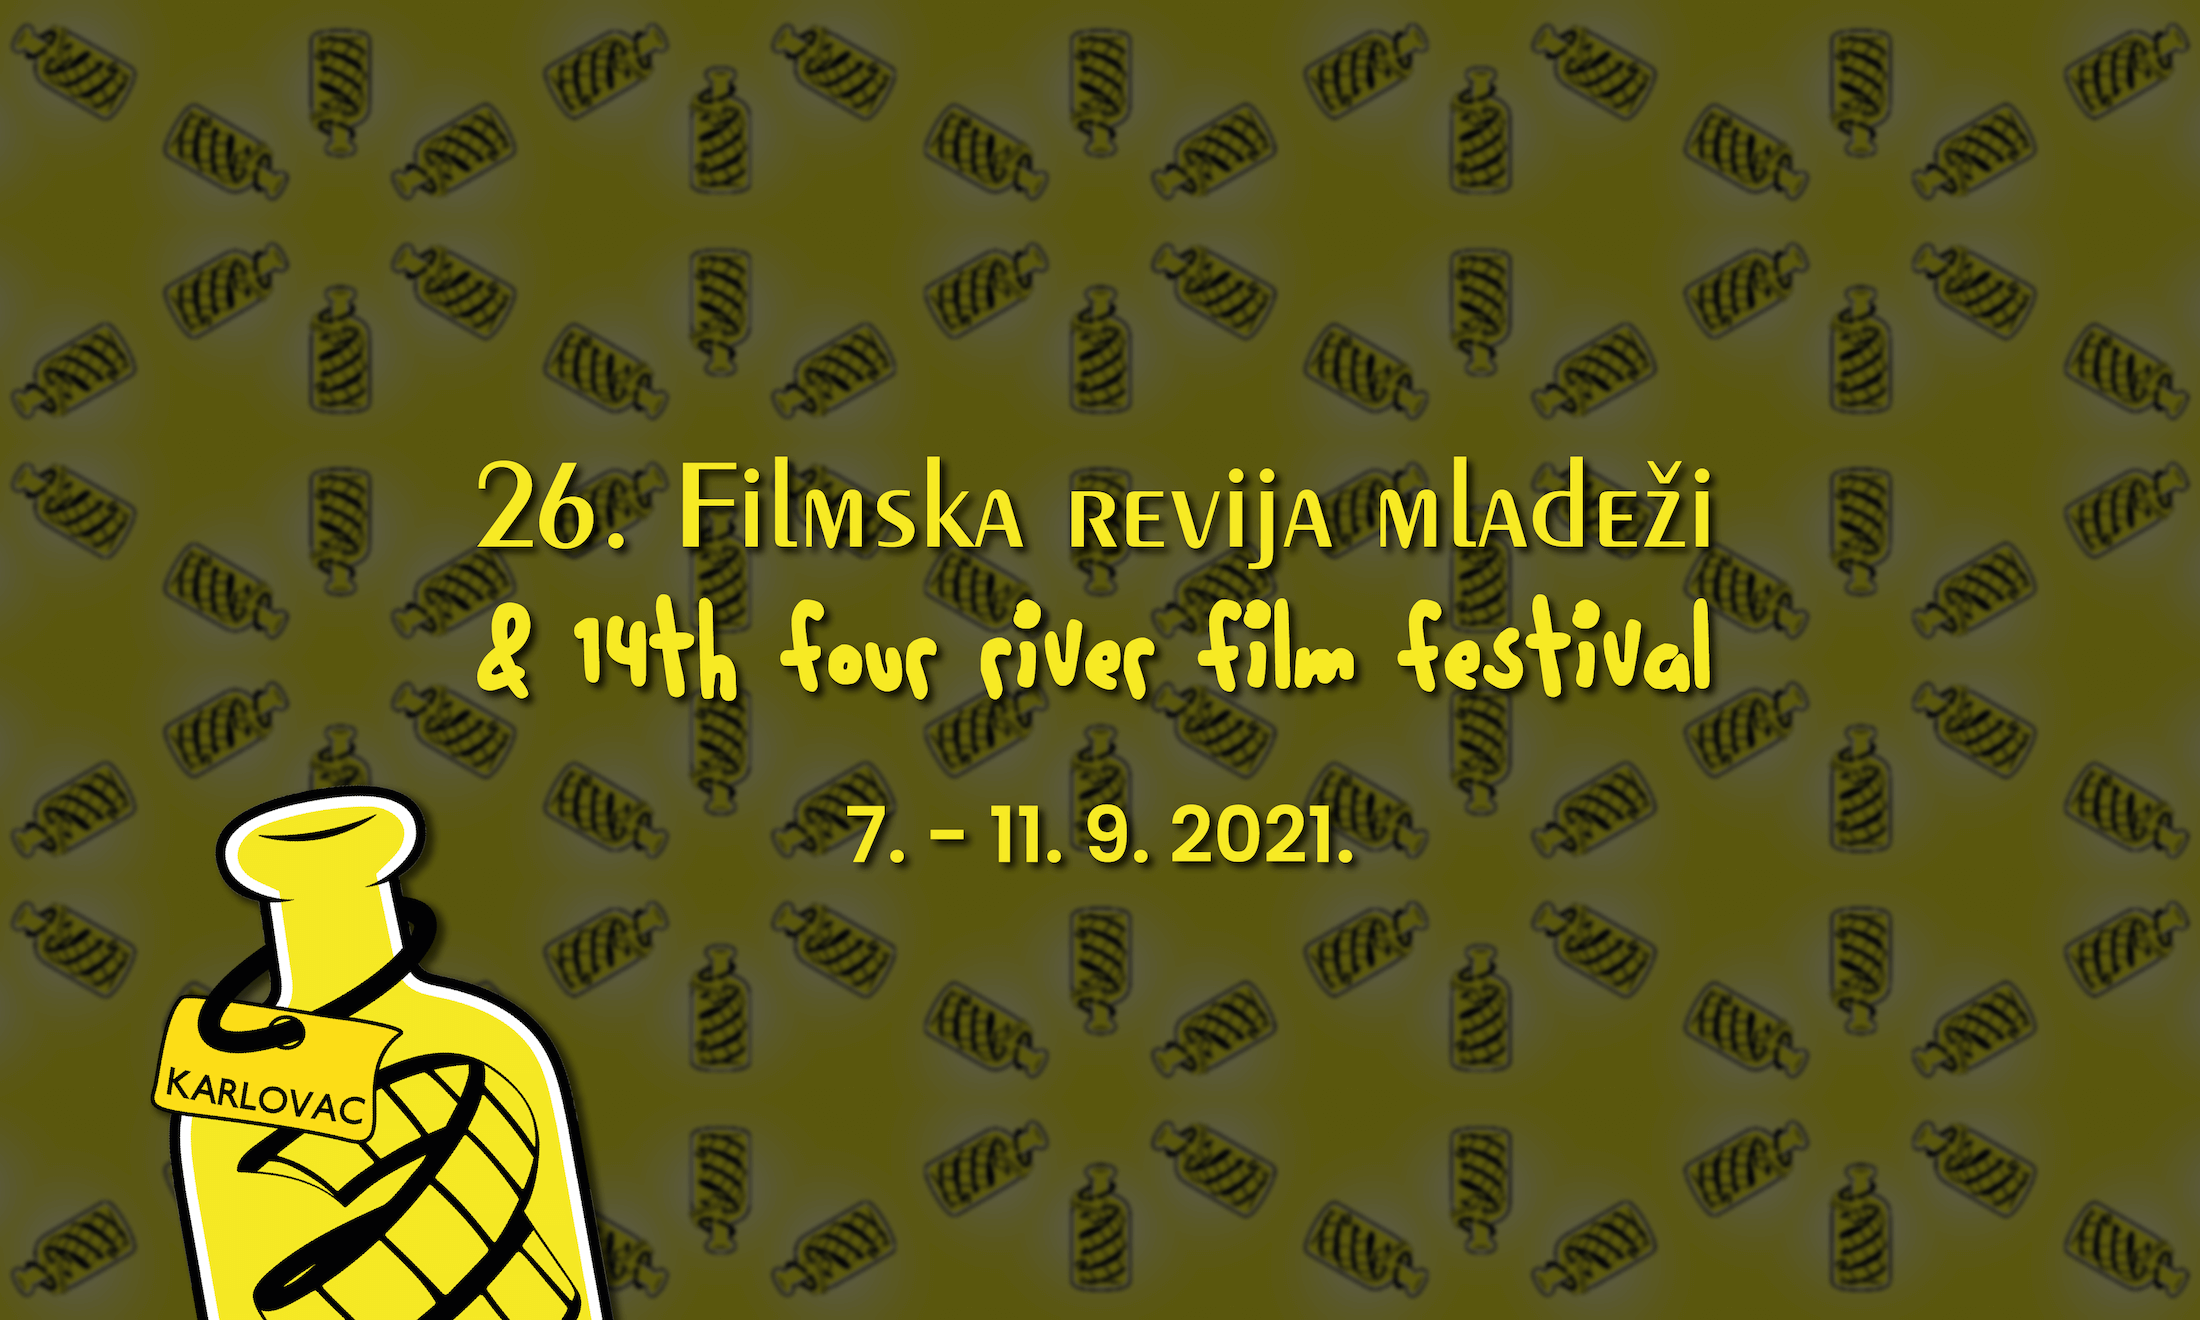 The films in the competition programs of the 26th Youth Film Festival and the 14th Four River Film Festival revealed